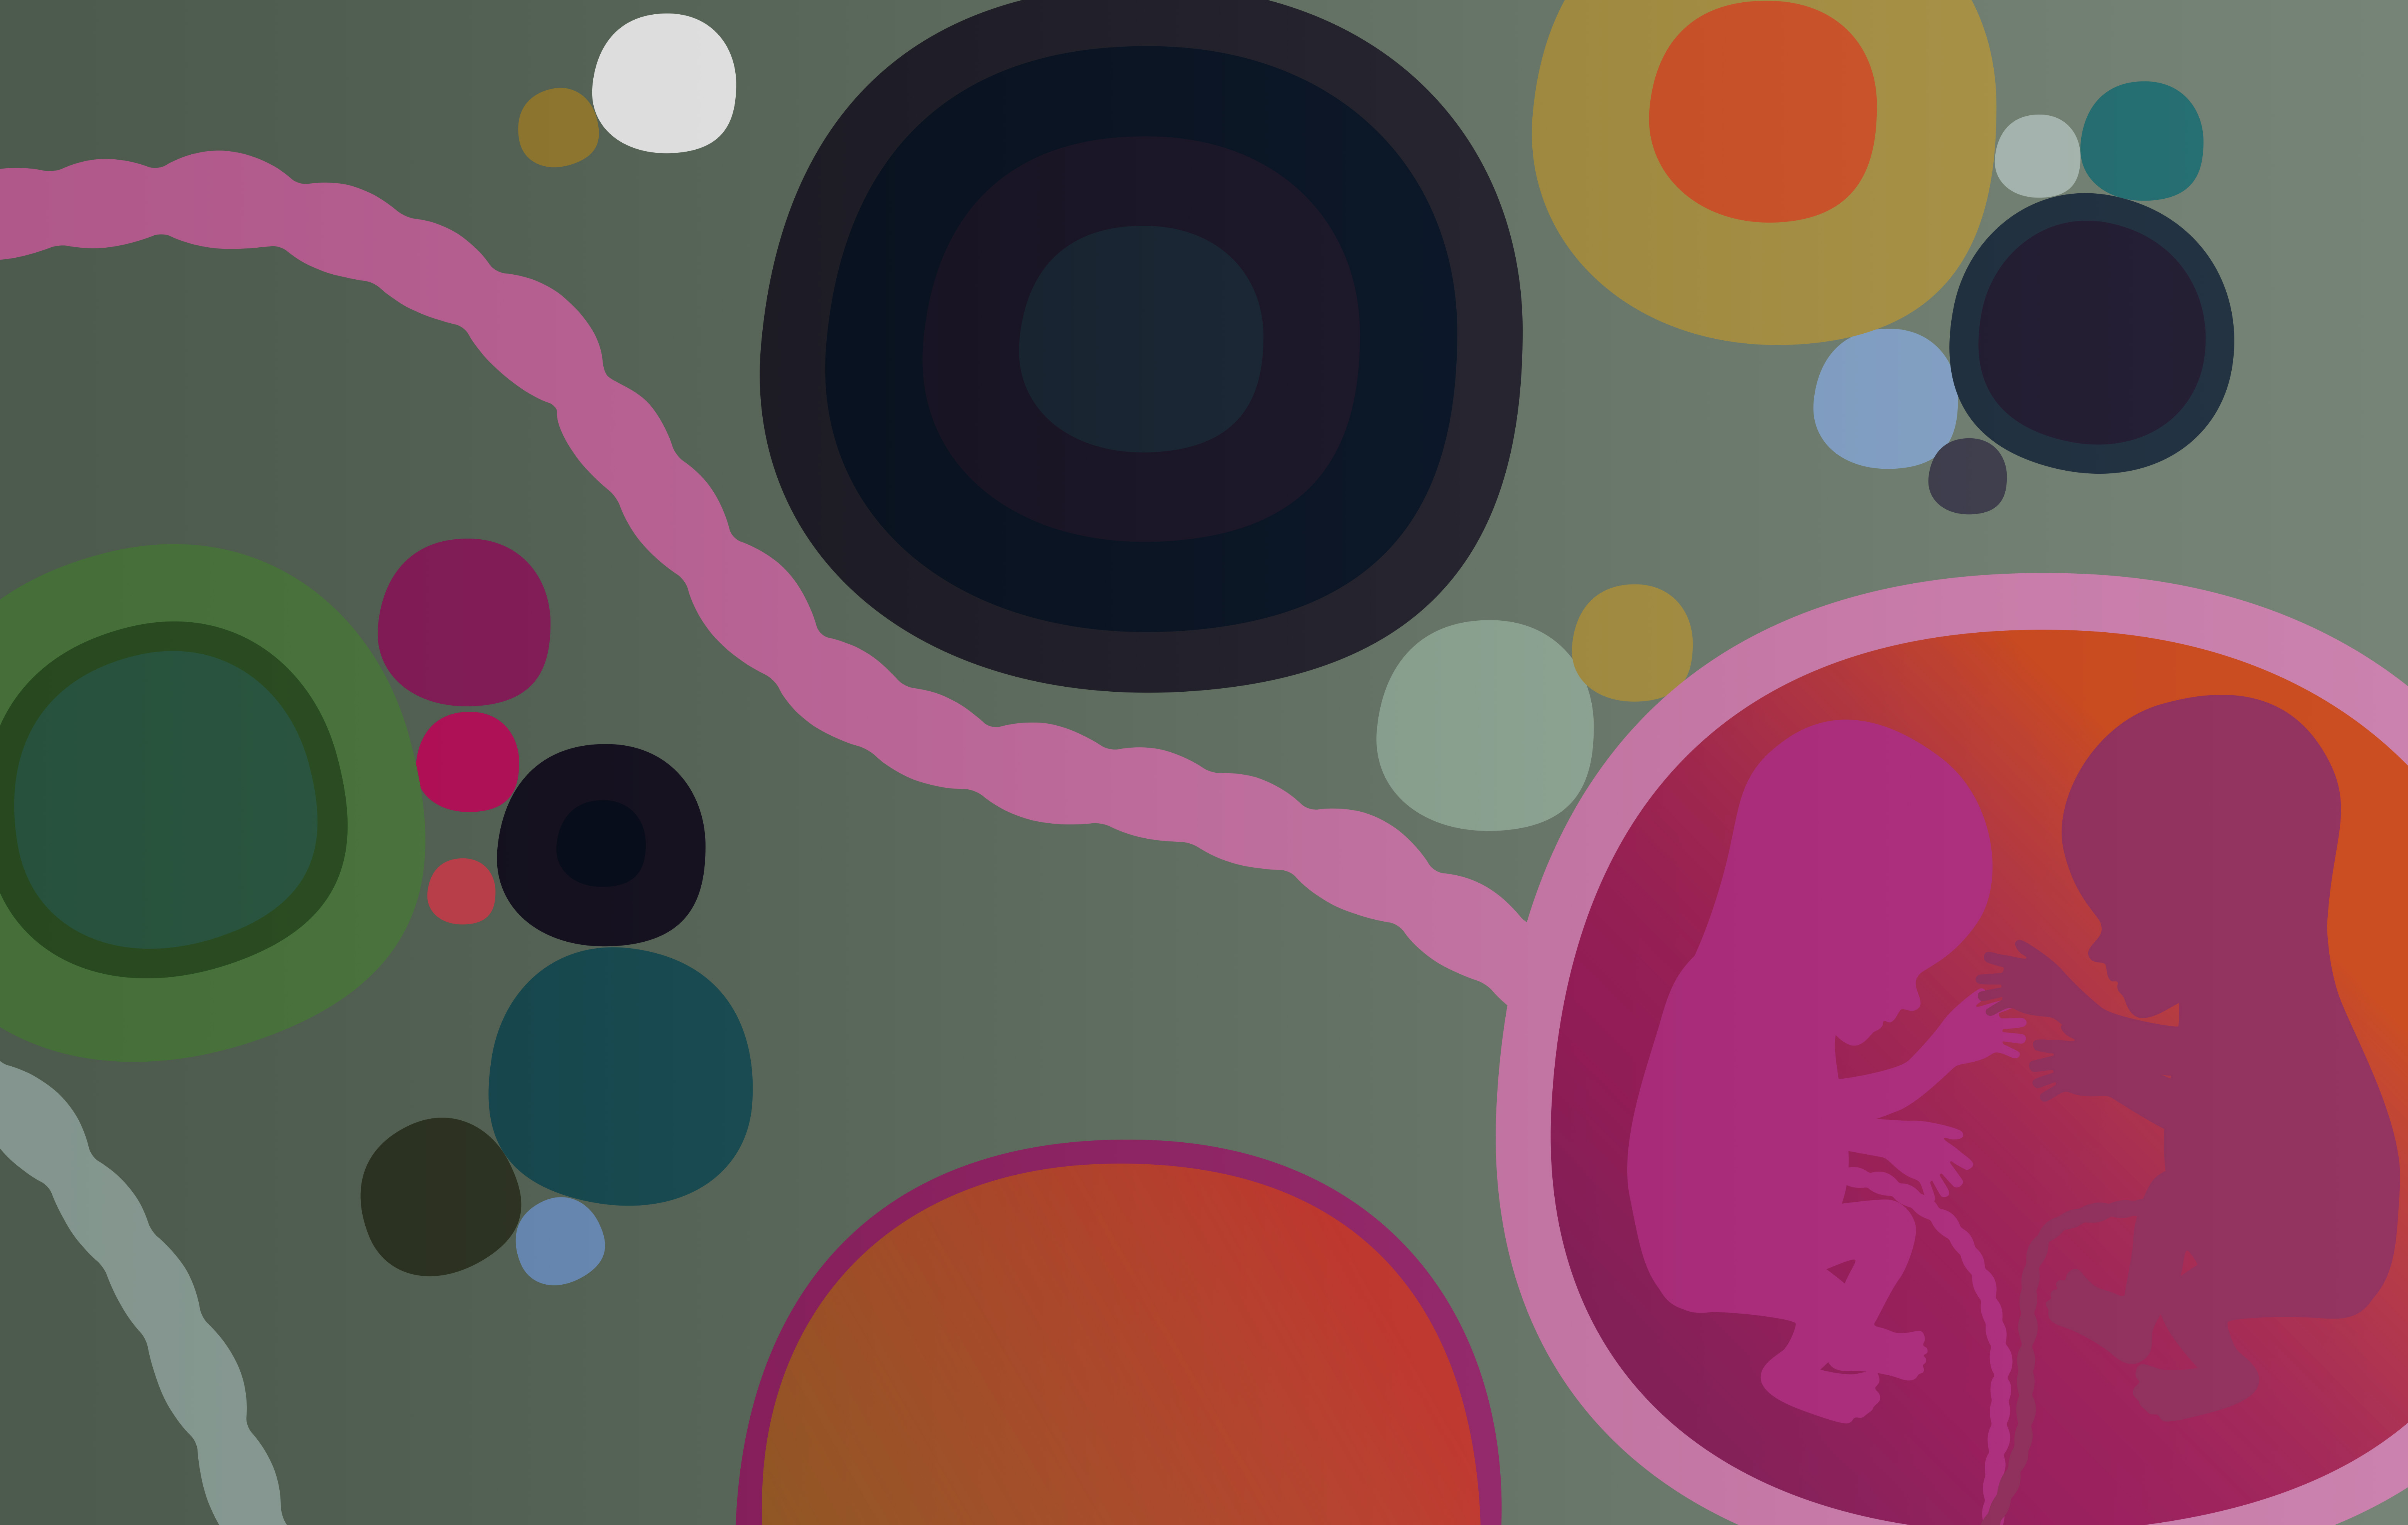 Colourful Kari Modén illustration of two babies in the womb